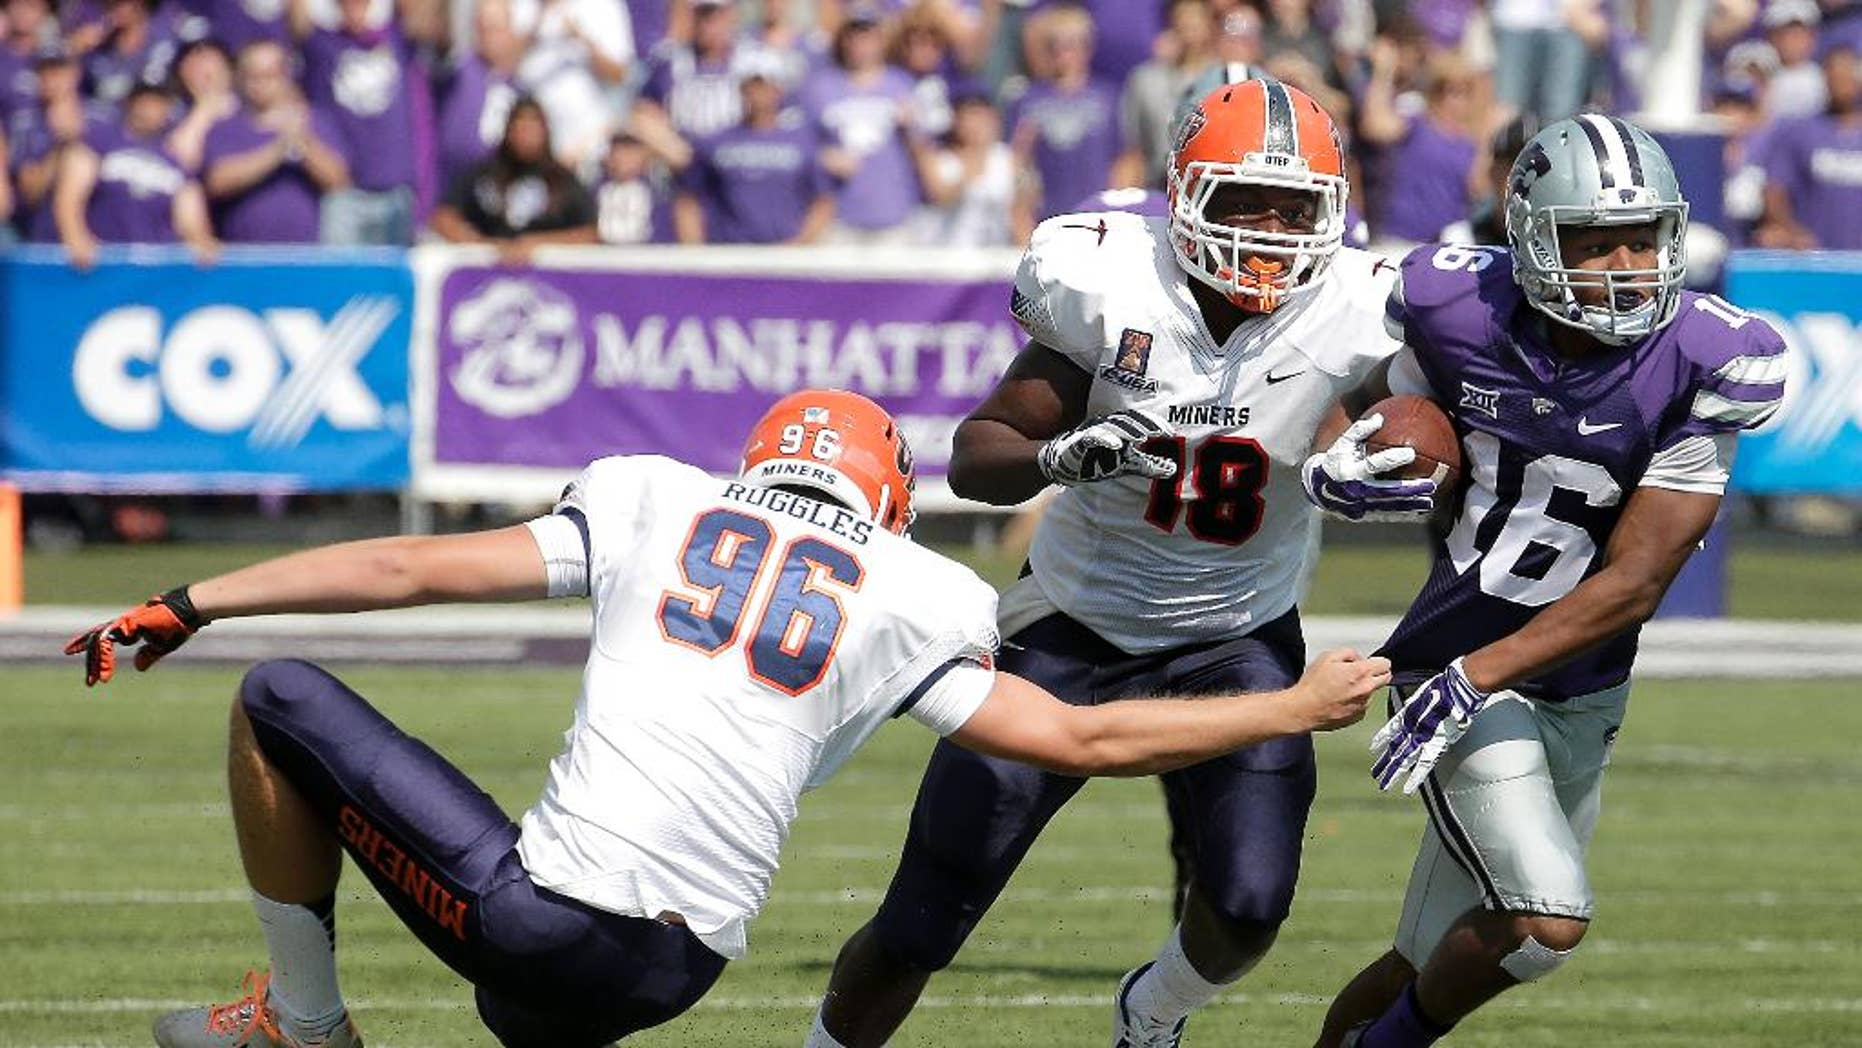 Kansas State wide receiver Tyler Lockett (16) gets past UTEP place kicker Mike Ruggles (96) and tight end Katrae Ford (18) as he returns a punt during the first half of an NCAA college football game, Saturday, Sept. 27, 2014, in Manhattan, Kan. (AP Photo/Charlie Riedel)